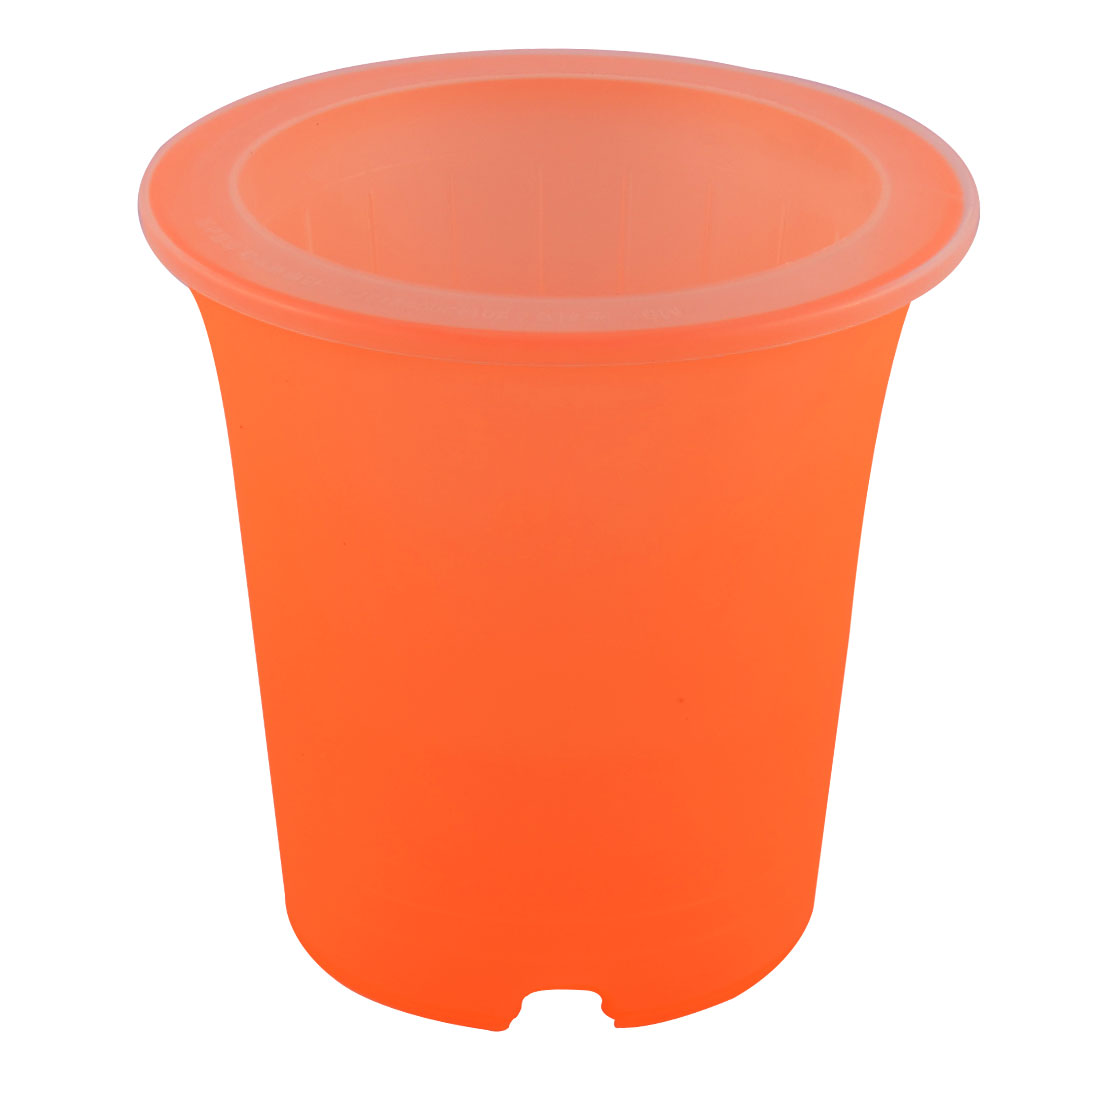 Office Home Decor Plastic Double Layers Design Self Watering Planter Orange